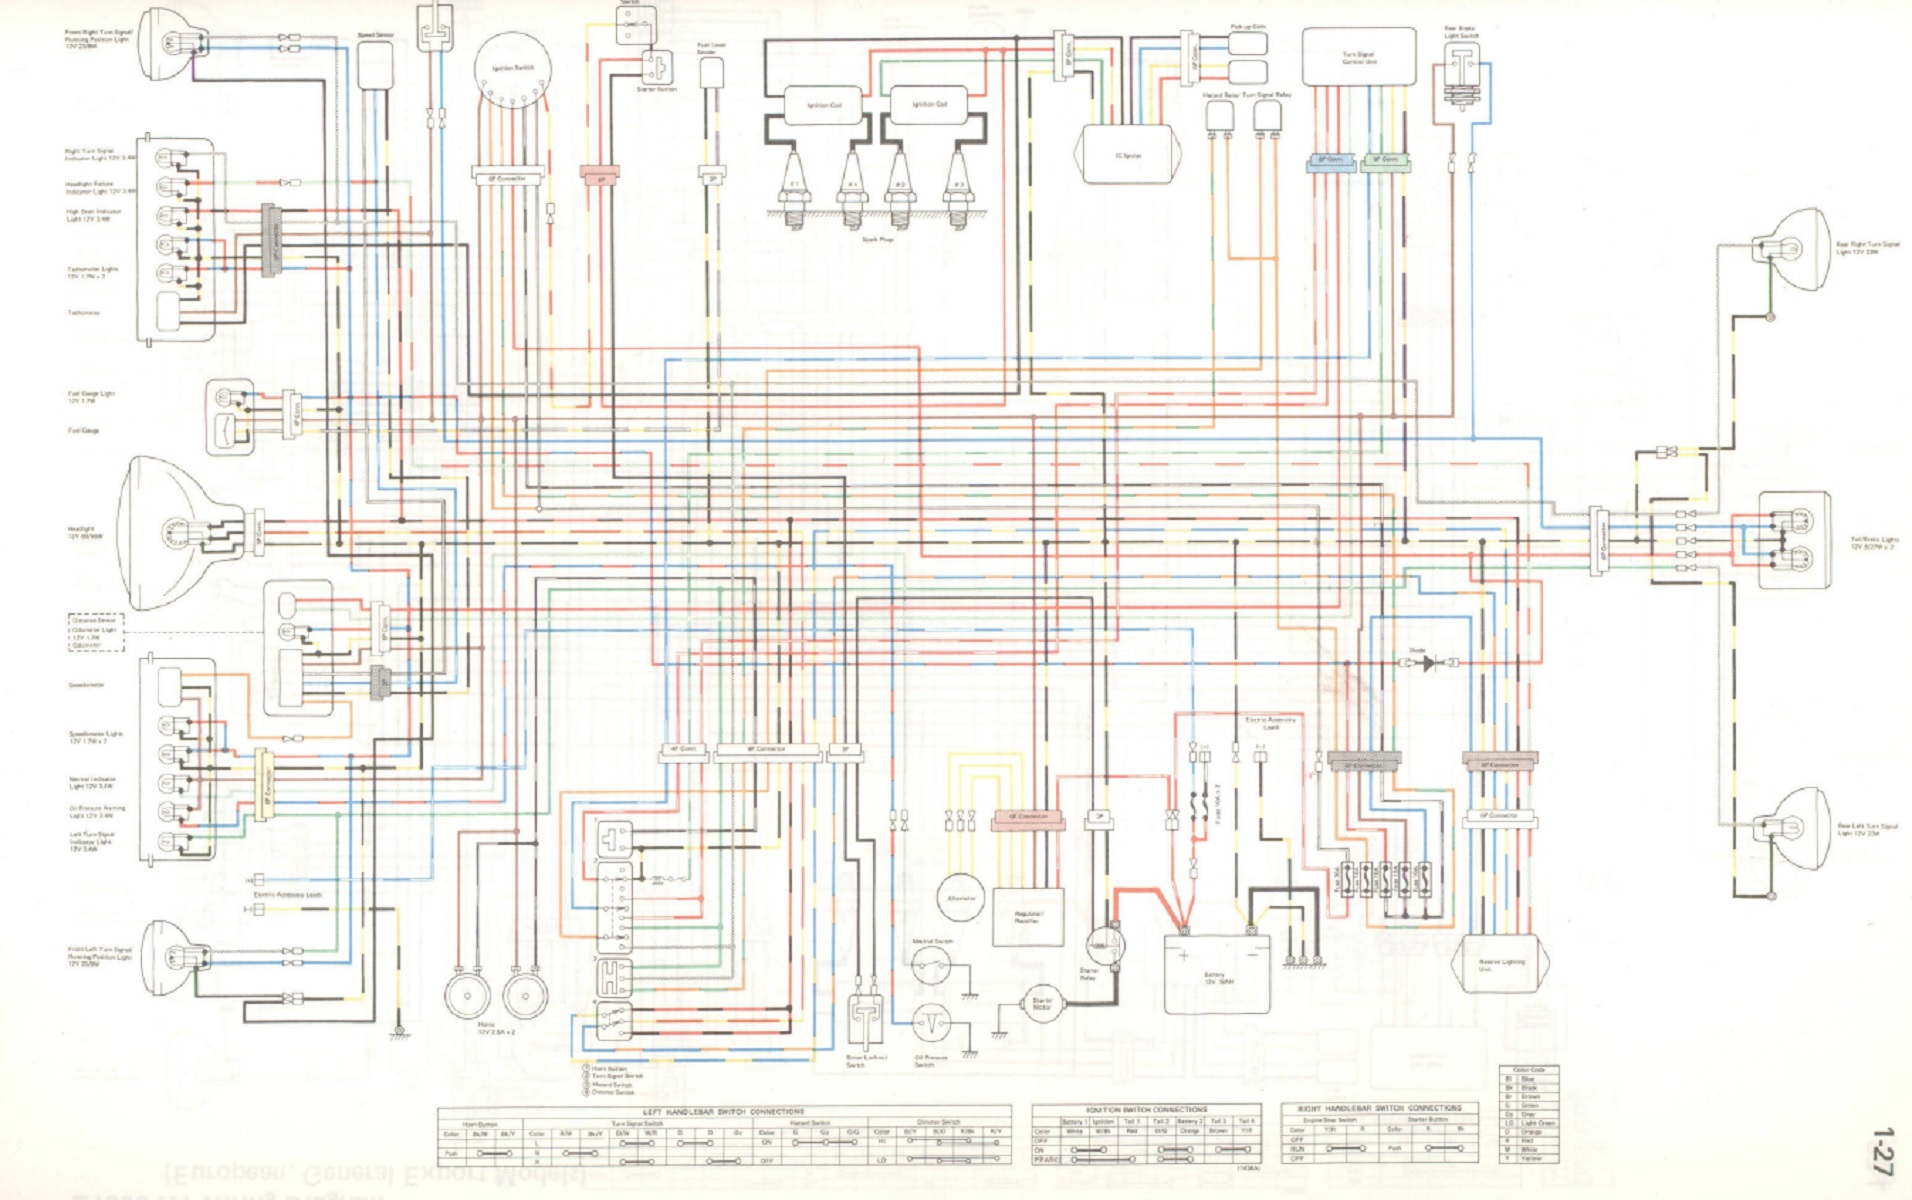 1981KZ1000 K1LTDwiringdiagram?resized665%2C4176ssld1 kawasaki bayou 250 wiring diagram efcaviation com 220 kawasaki bayou wiring diagram at aneh.co